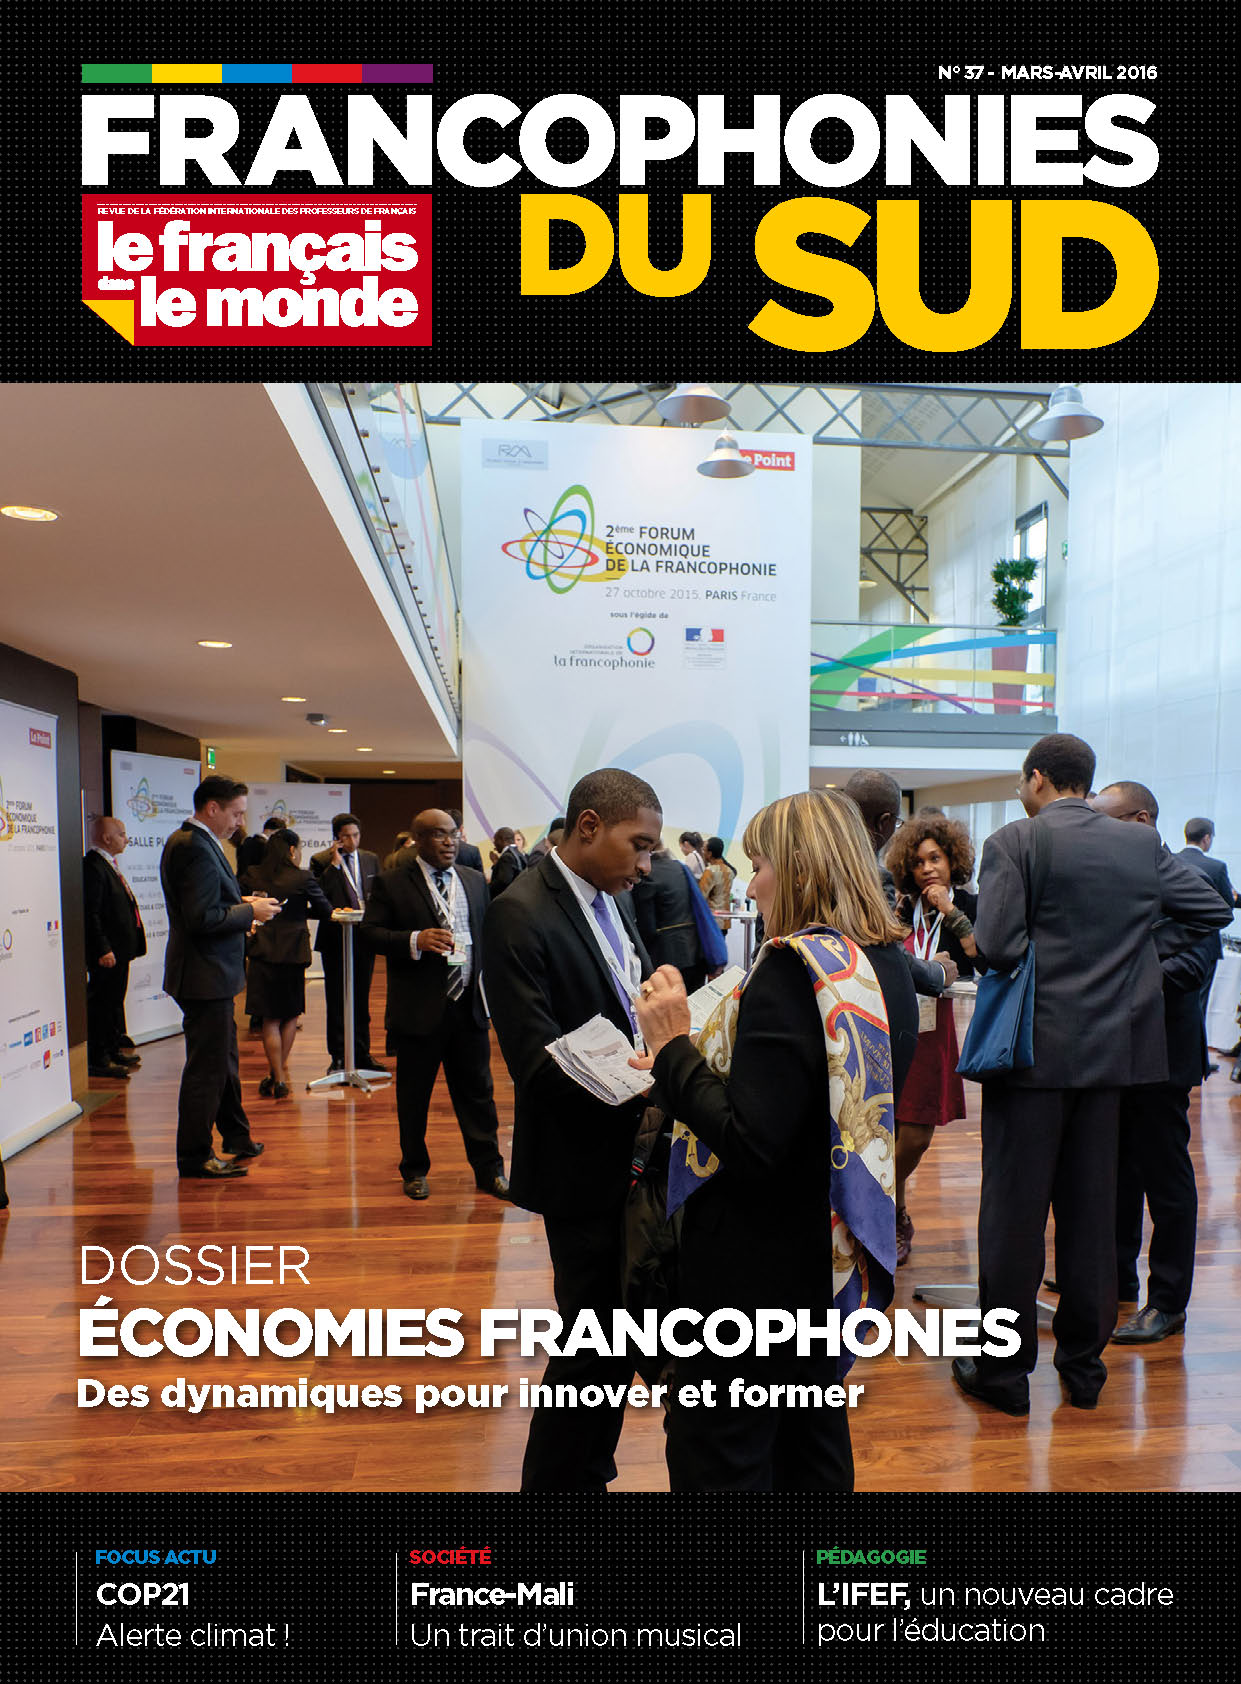 Couverture_FDS#37